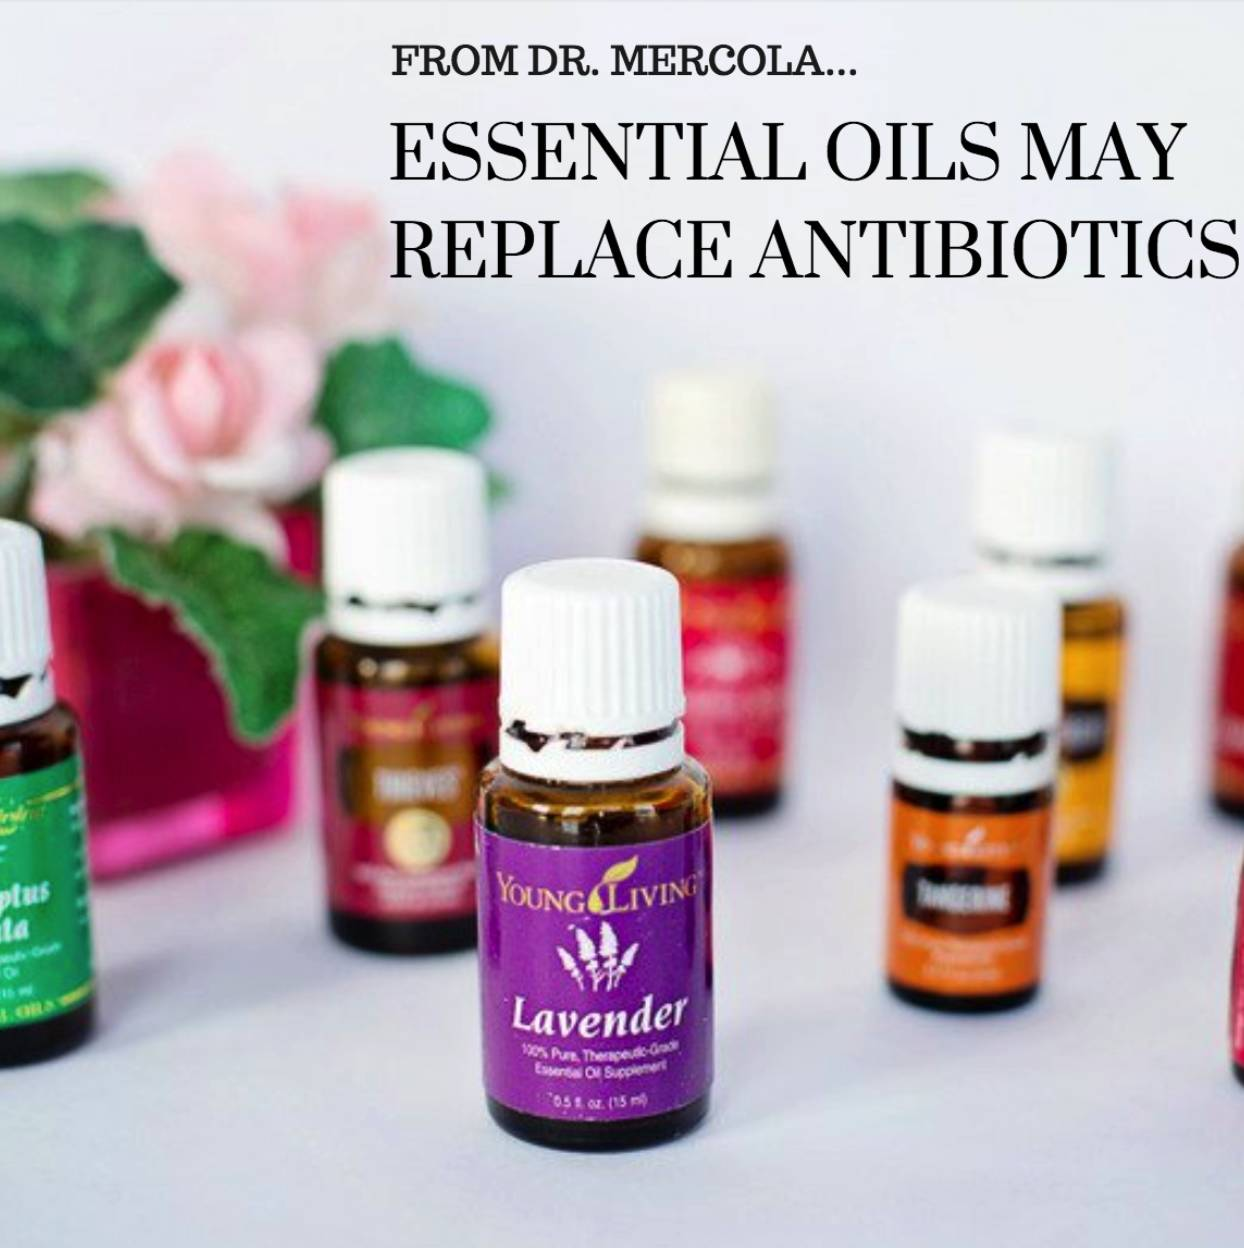 Essential Oils May Replace Antibiotics per Dr. Mercola